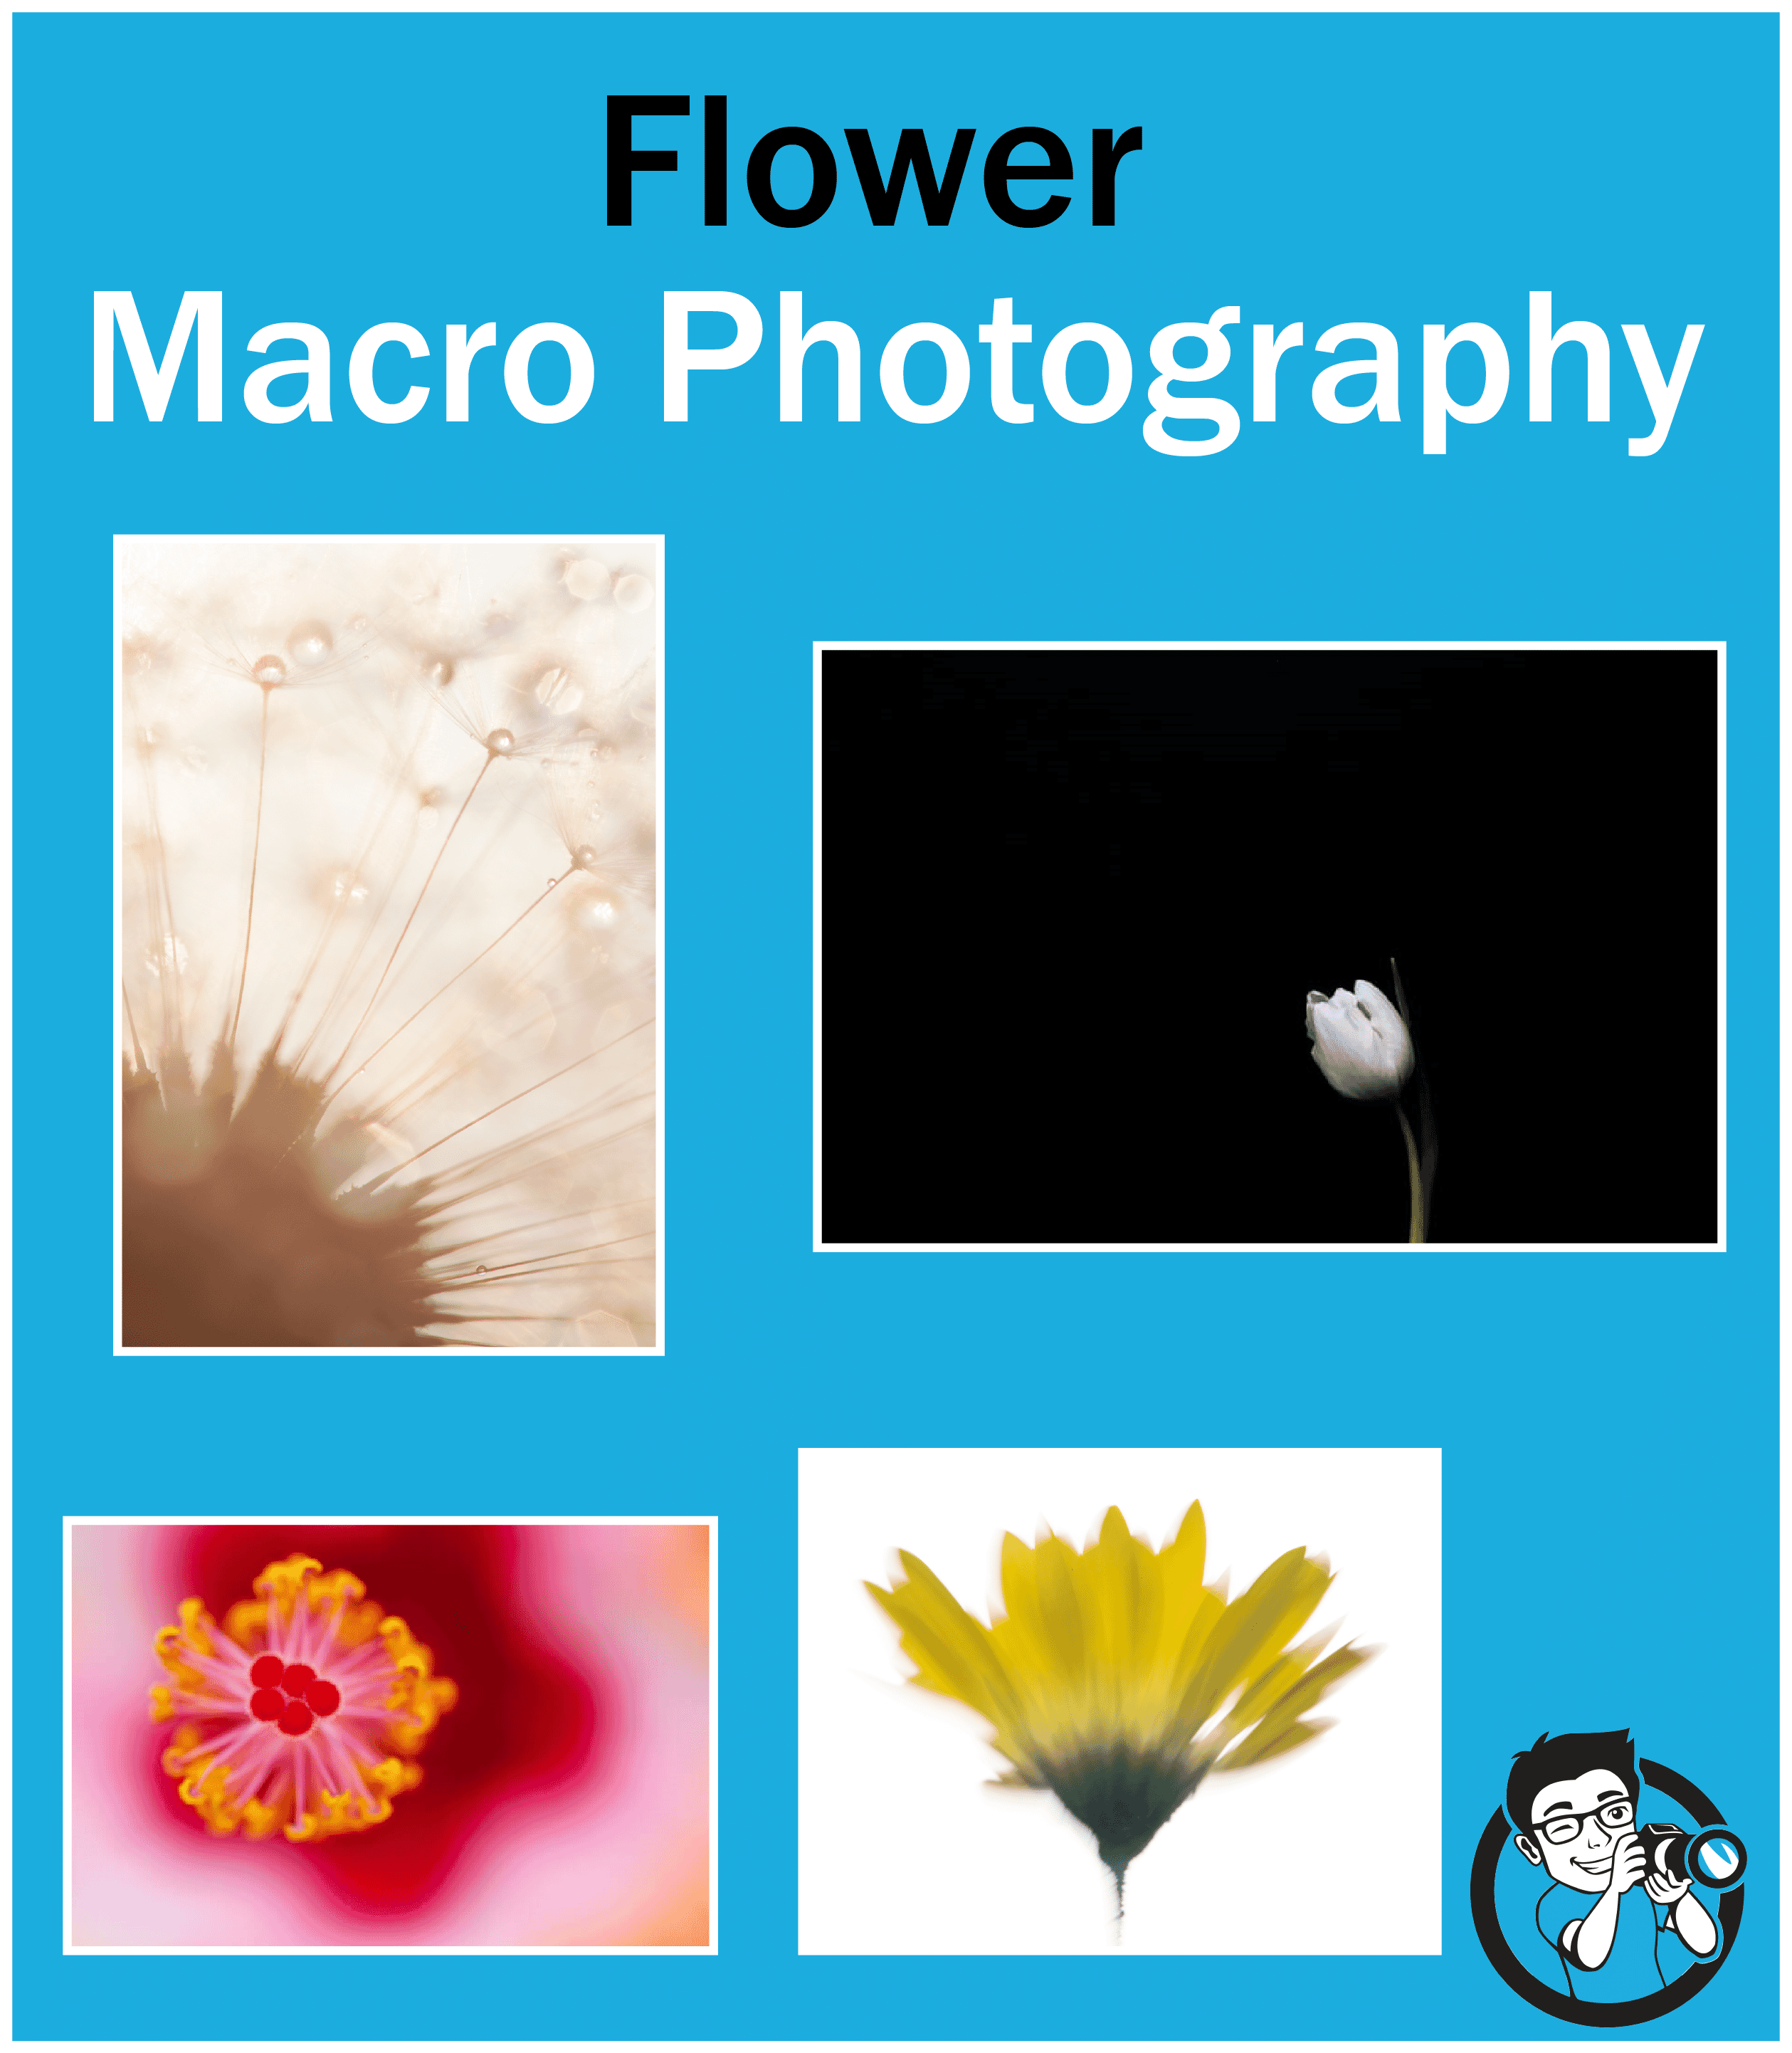 Flower Macro Photography: 10 Tips for Amazing Flower Photos